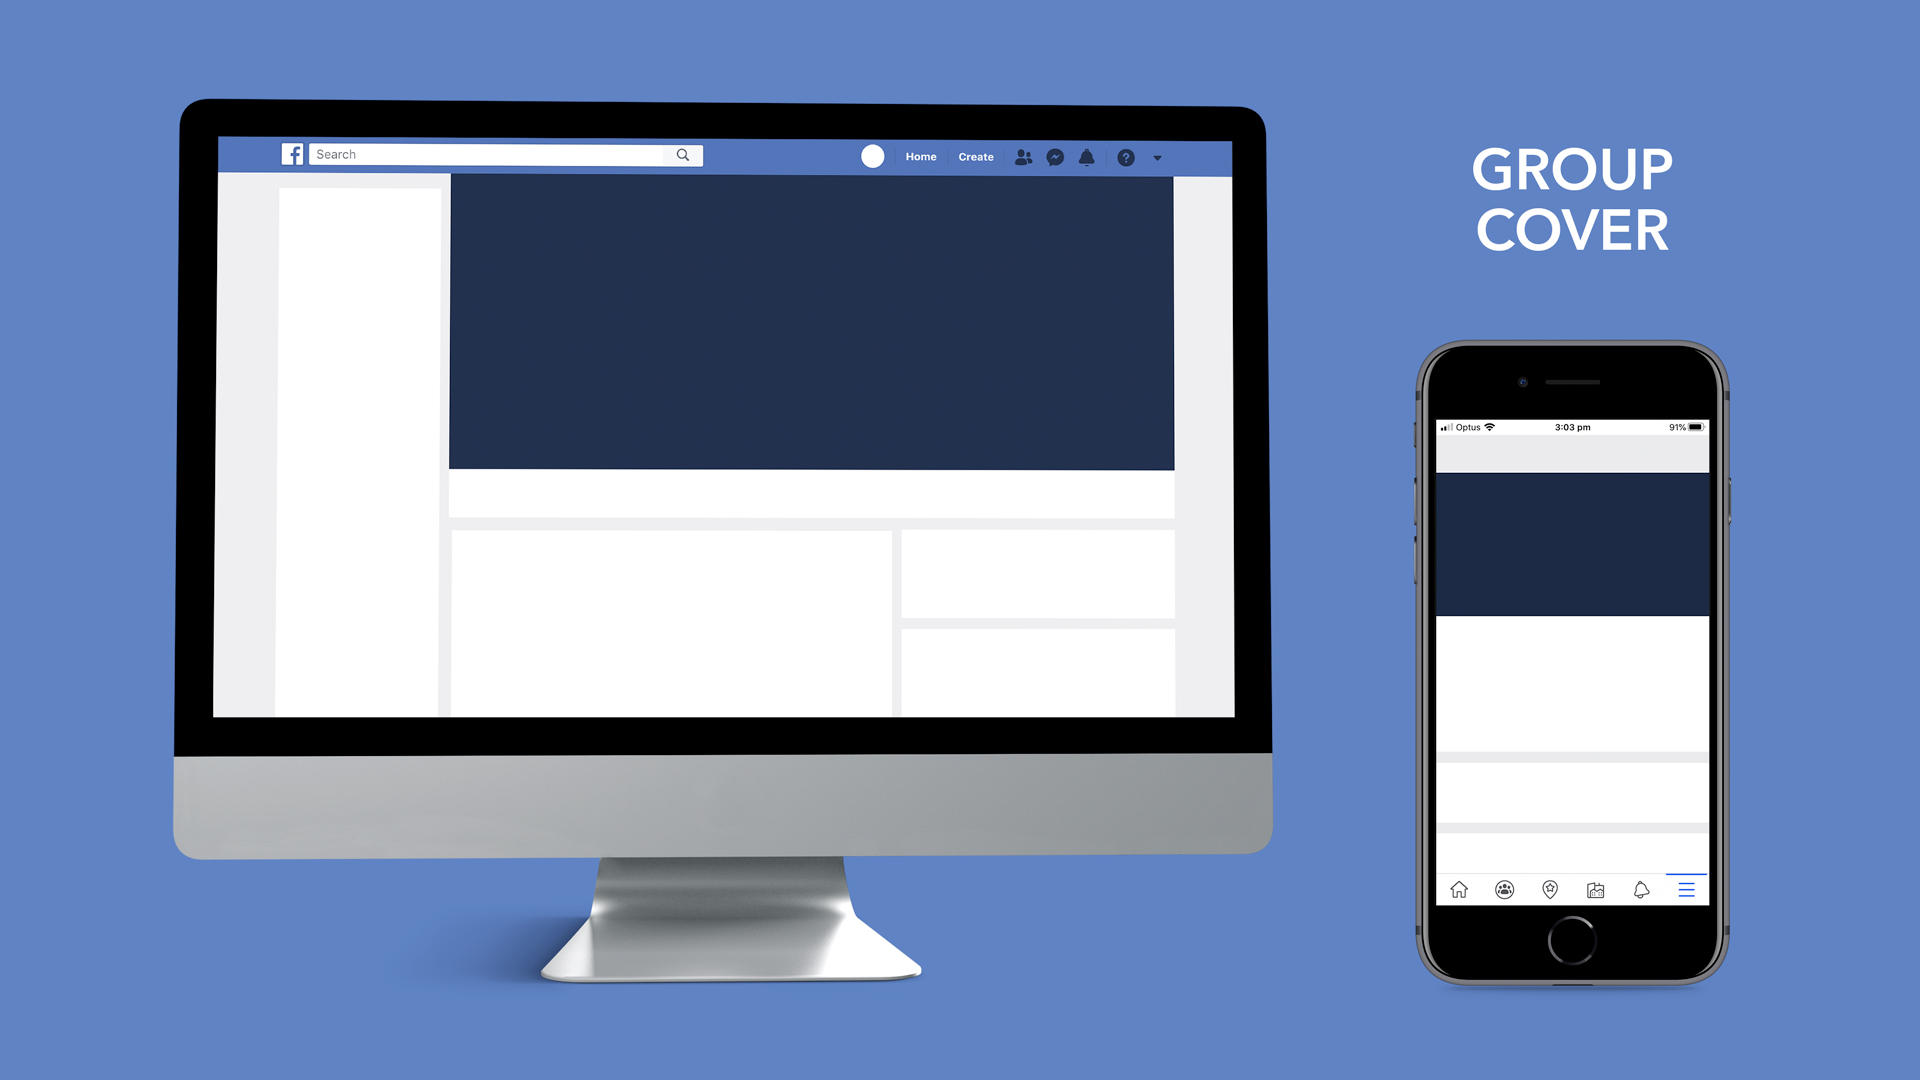 Facebook group cover image dimensions for desktop and mobile